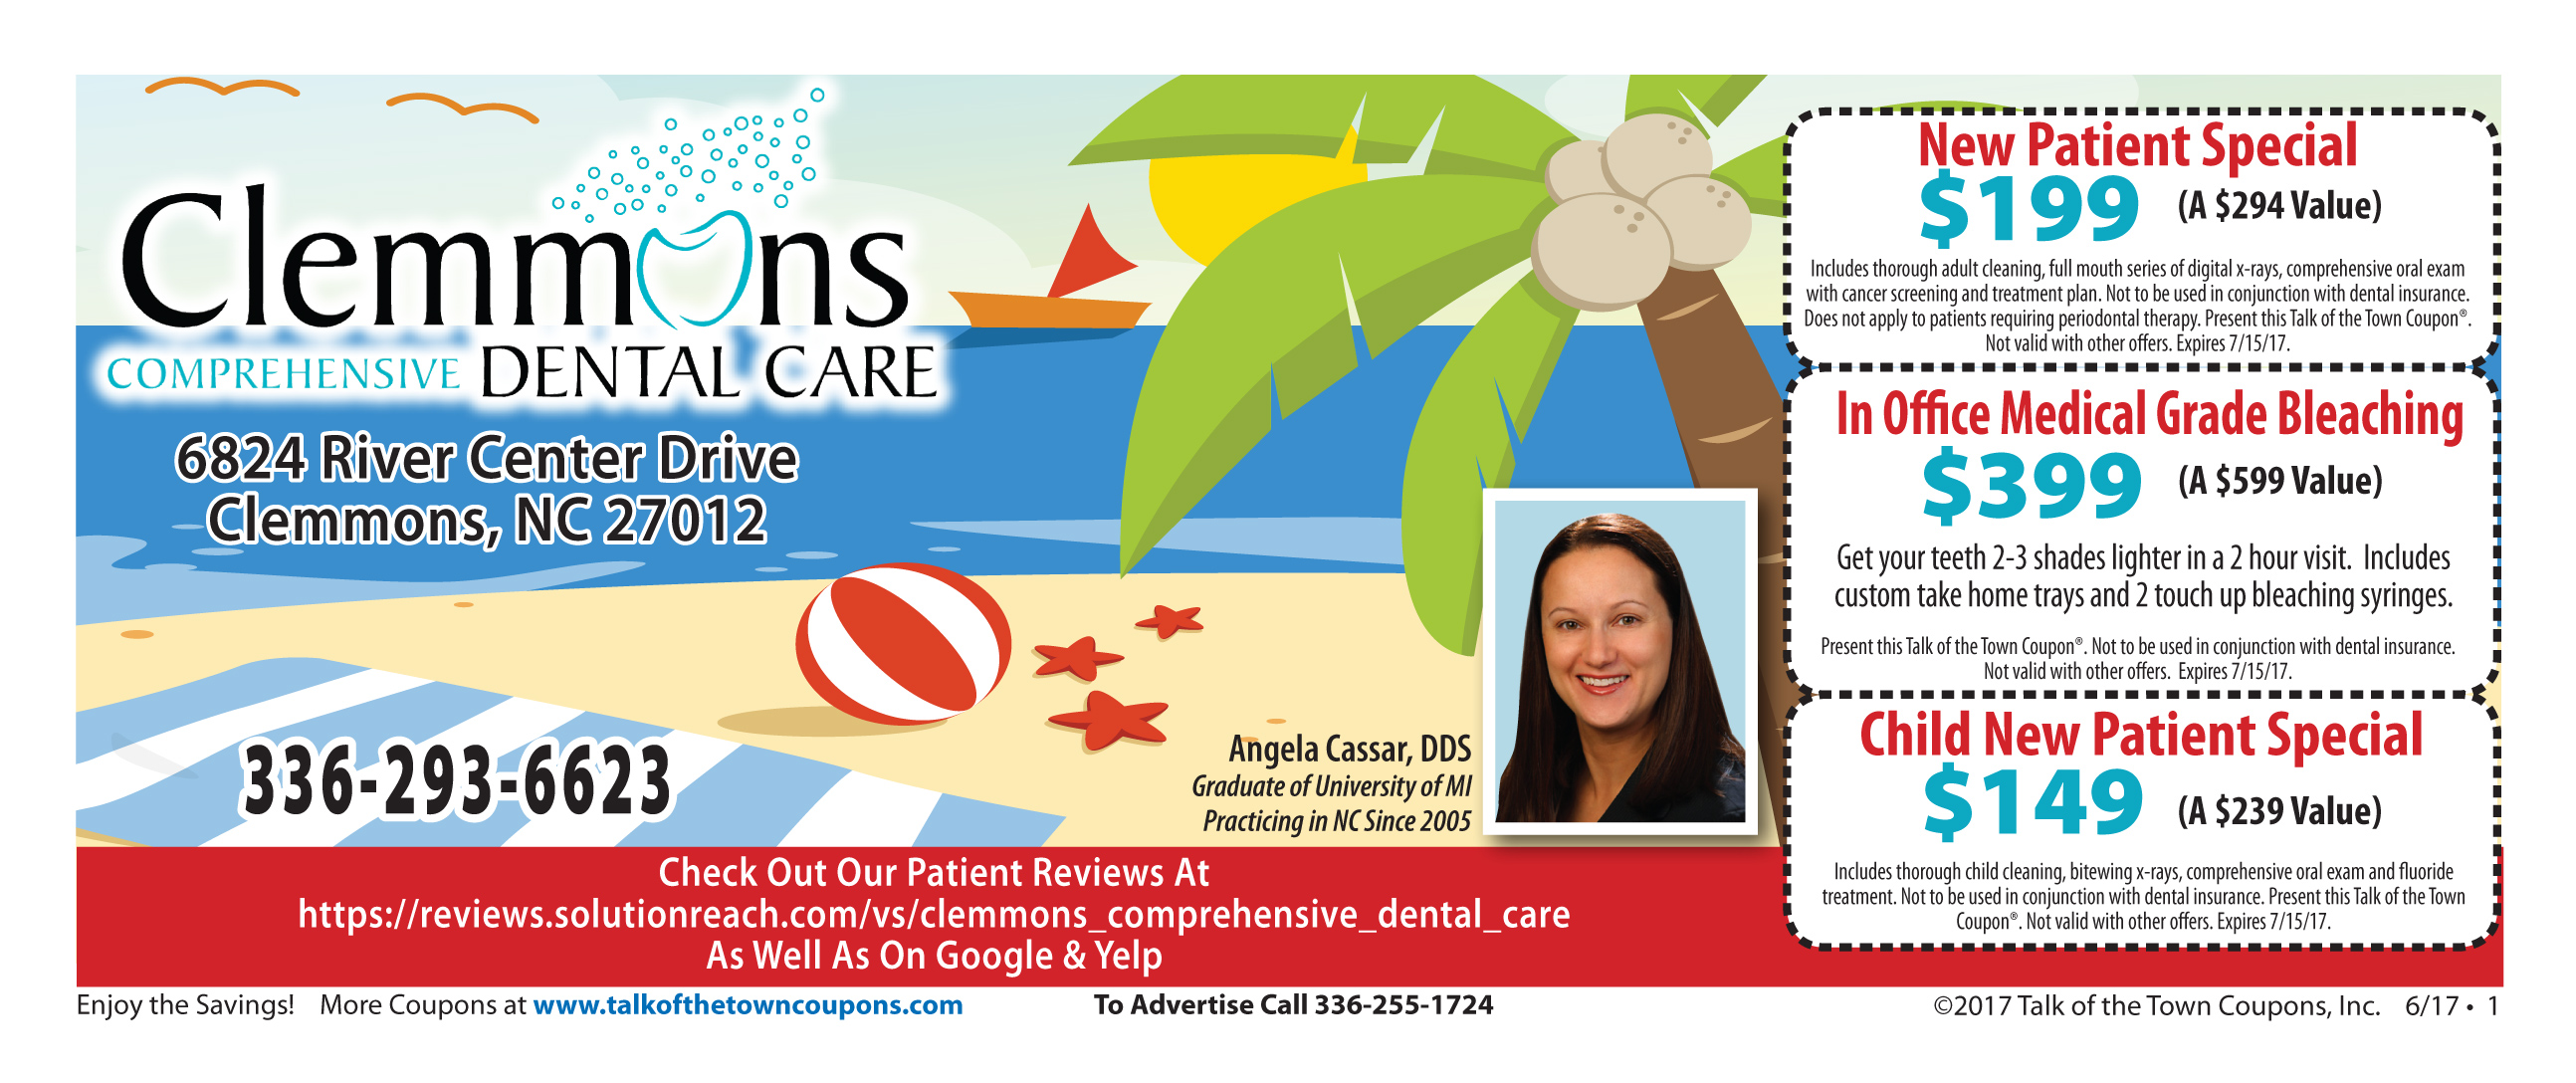 Clemmons Dental offer coupon booklet image